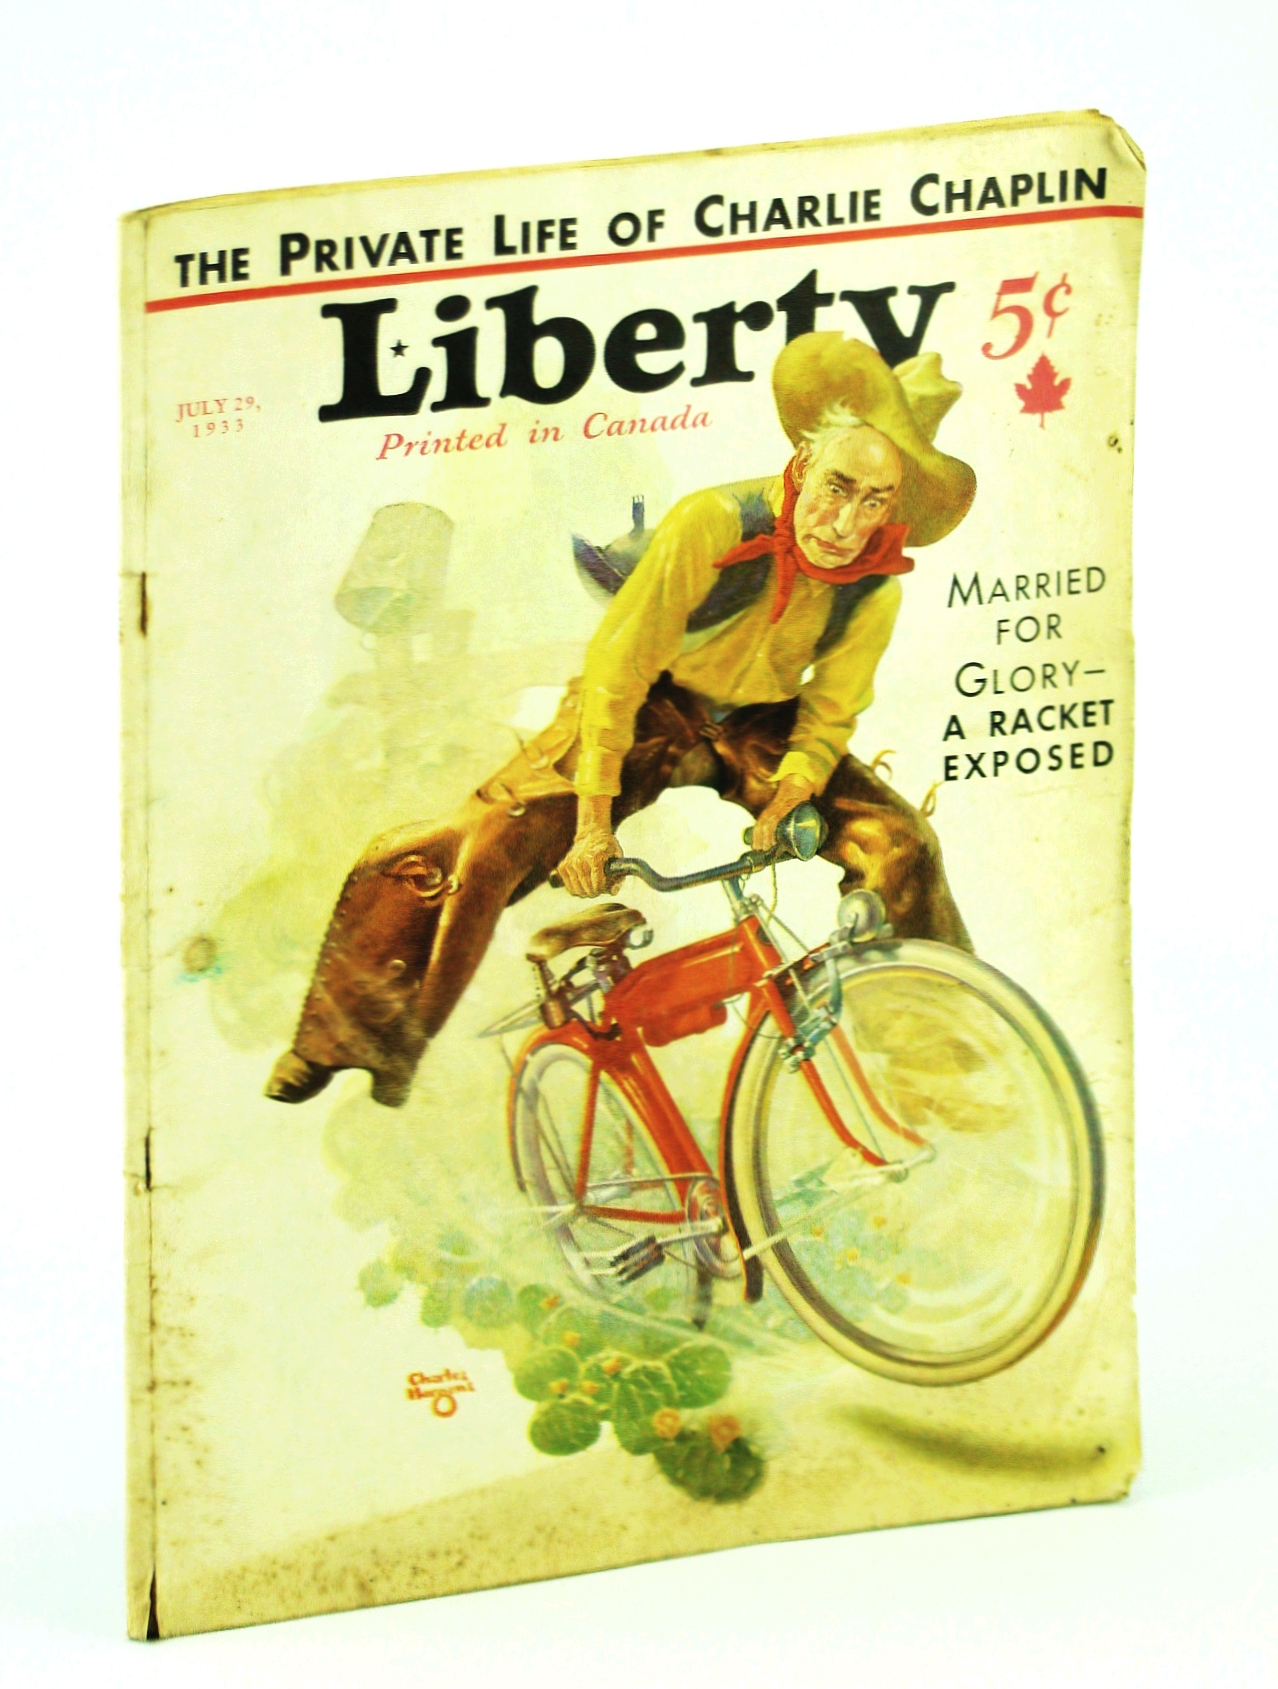 Image for Liberty Magazine, July 29, 1933, Vol. 10, No. 30: The Private Life of Charlie Chaplin